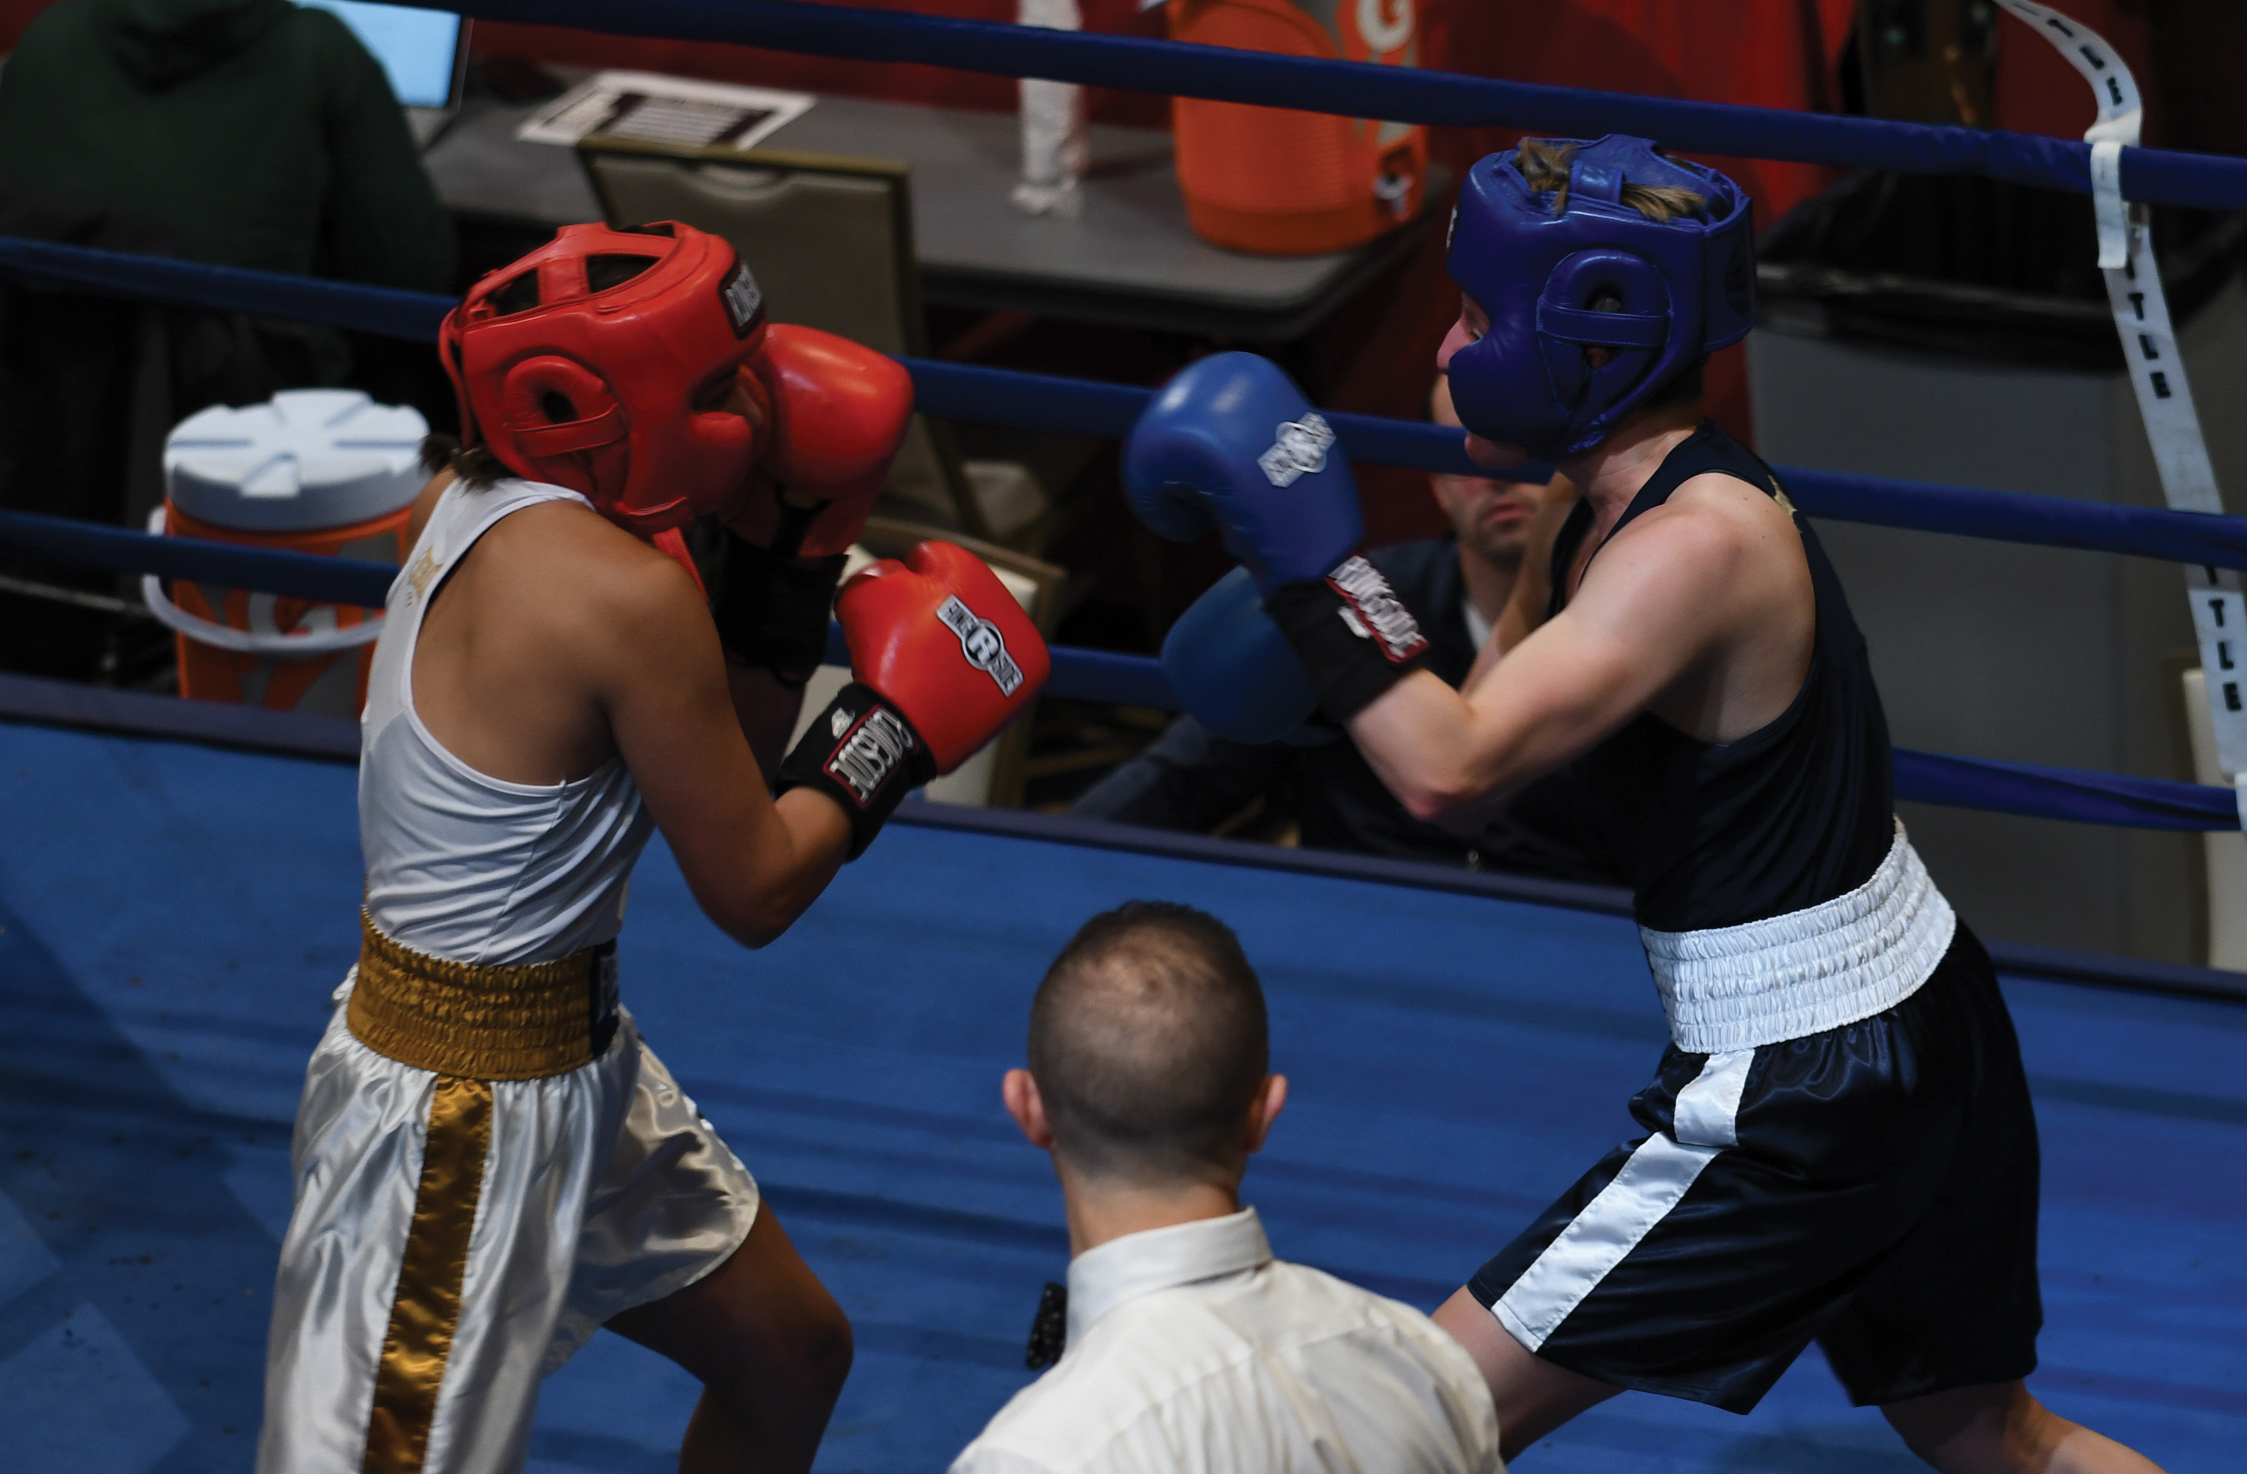 Alexis Texas Boxing baraka bouts field narrowed with 24 semifinal matches // the